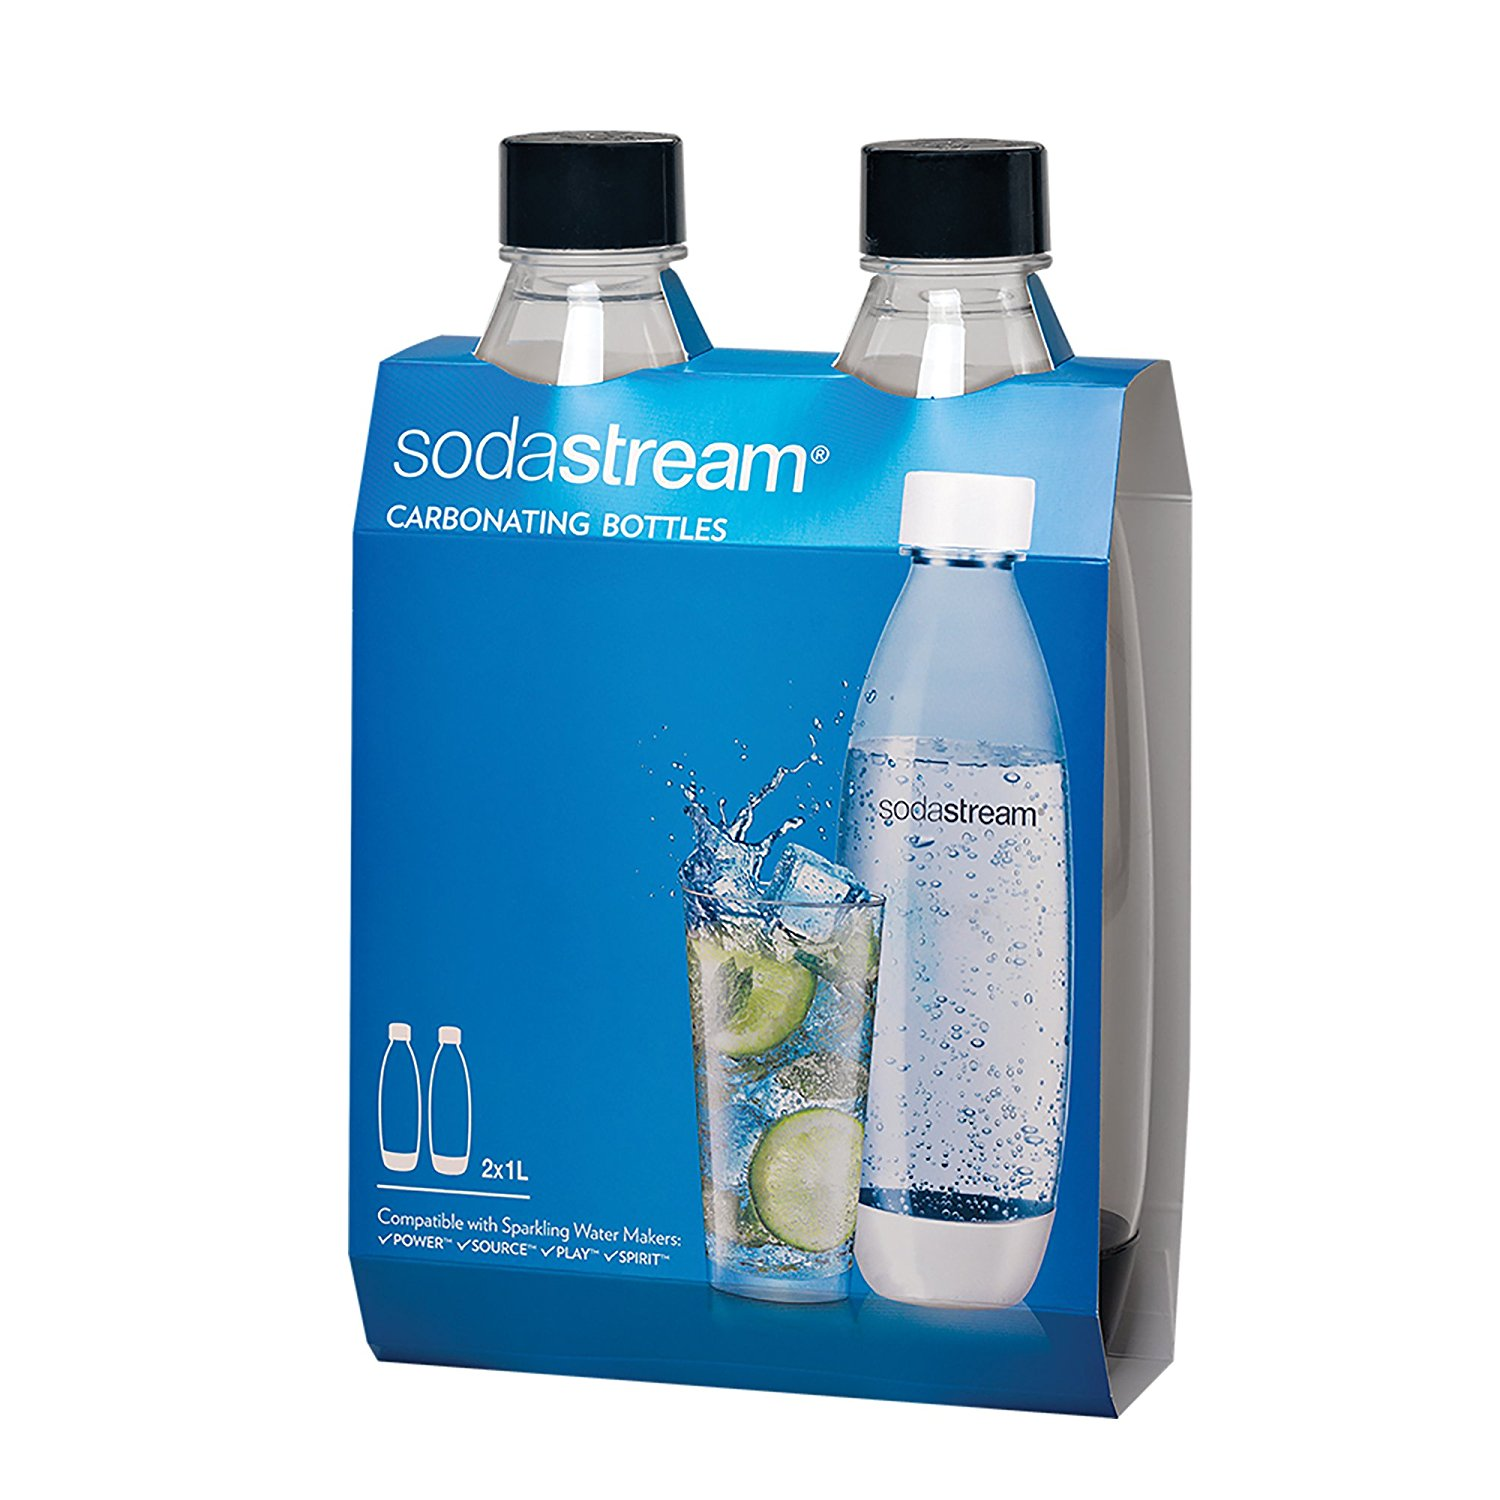 Image for Sodastream Source Twinpack Carbonating Bottle, 1L, White from Circuit City